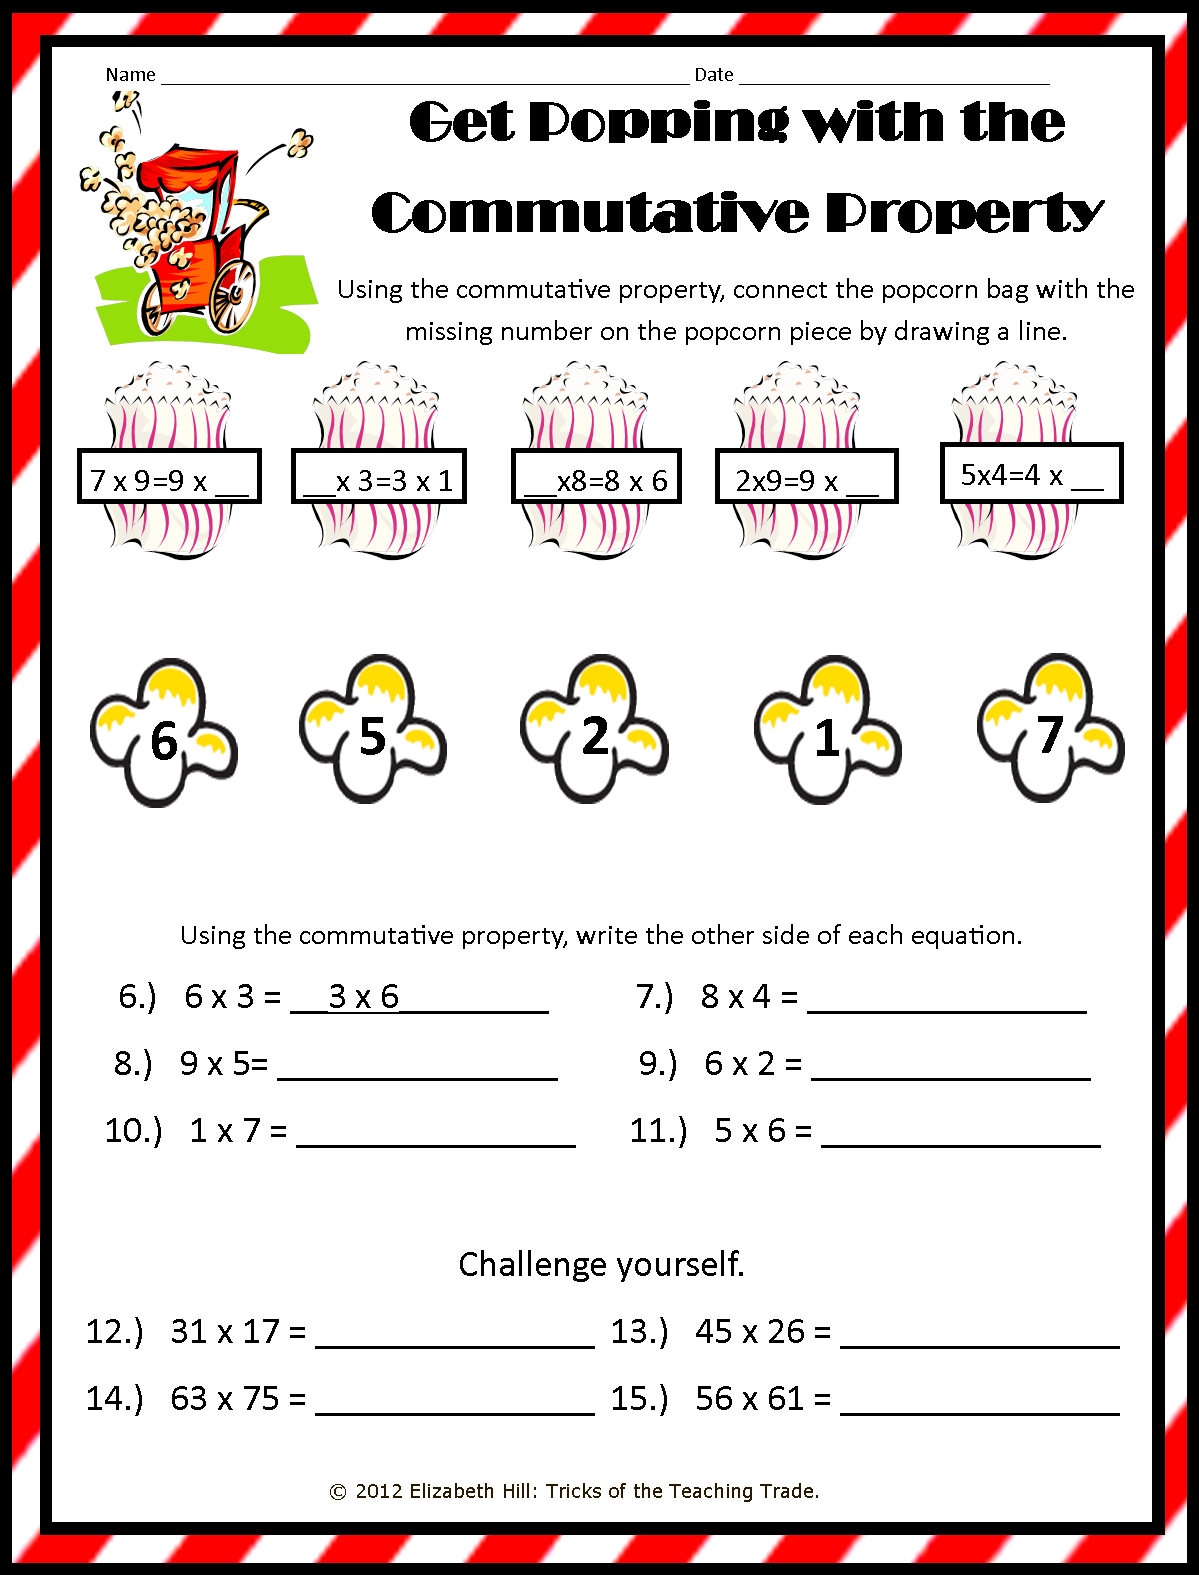 math worksheet : mrs hill s perfect p i r a t e s  october 2012 : Associative Property Of Multiplication Worksheets 4th Grade